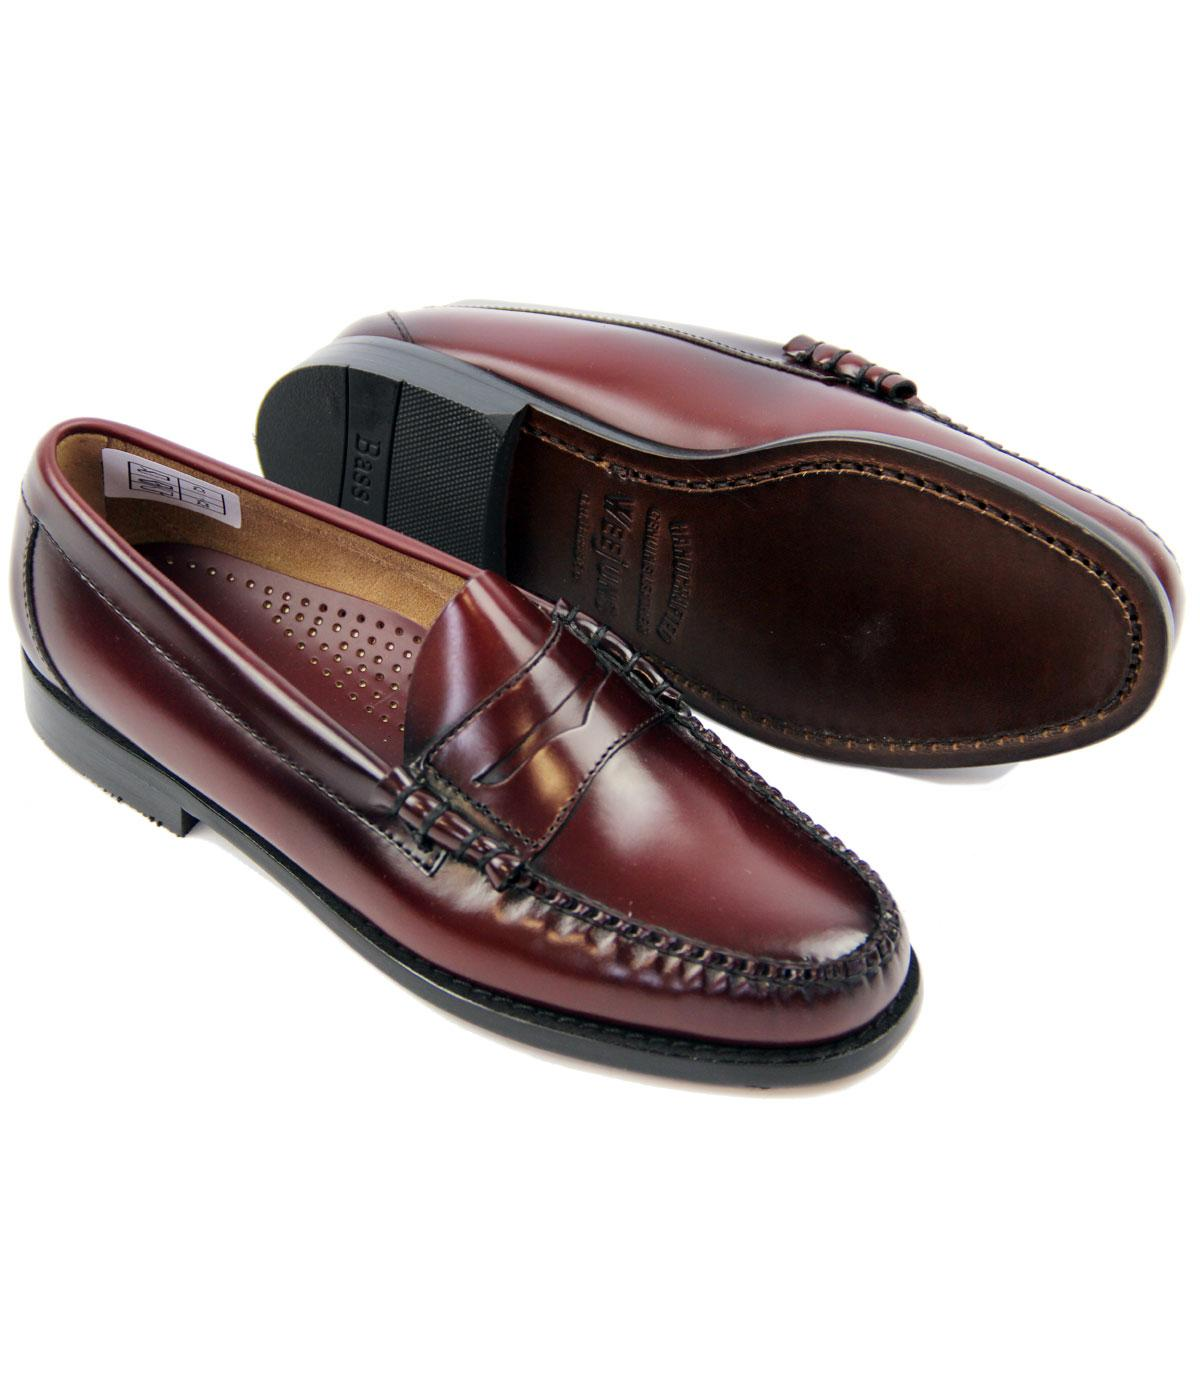 BASS WEEJUNS Larson Retro Mod Penny Loafer Shoes in Wine ...